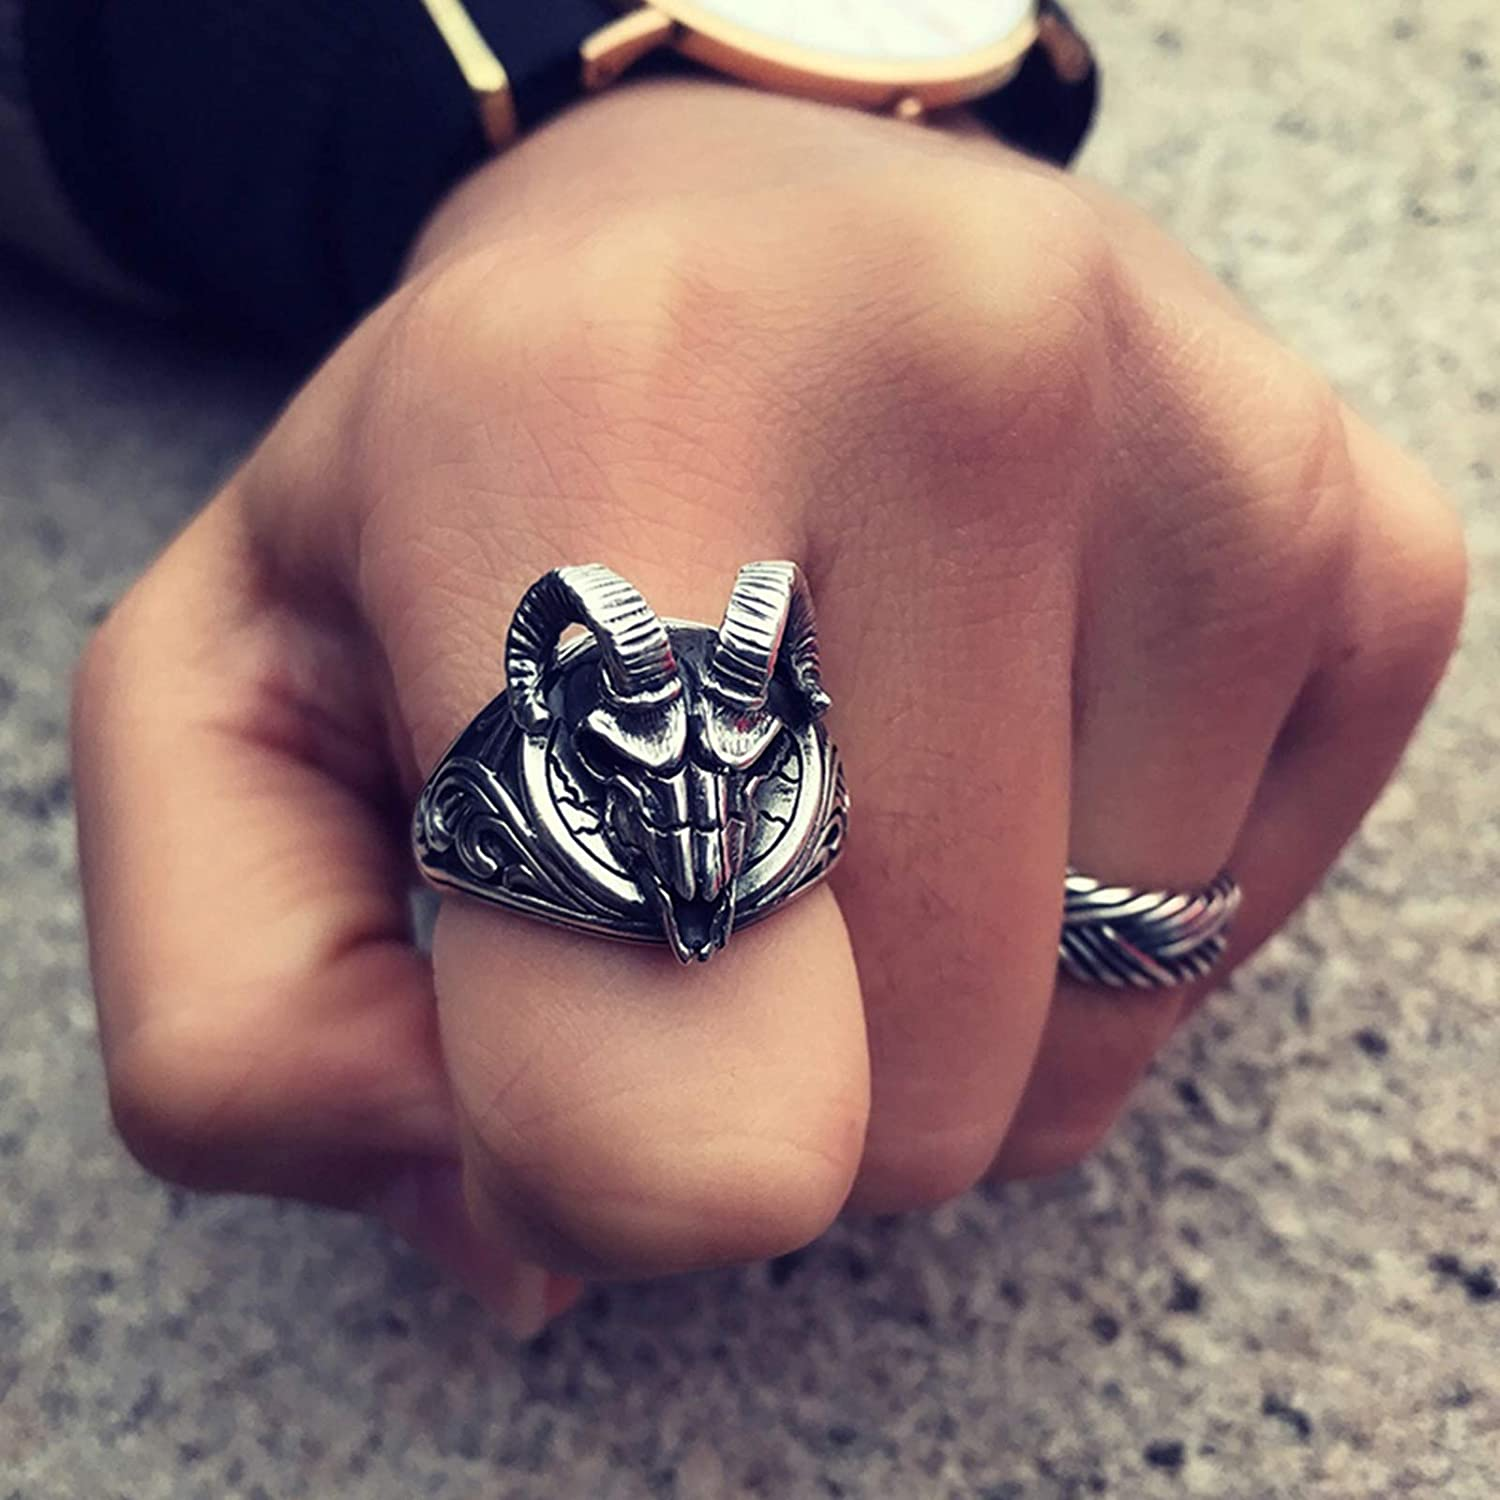 AMDXD Jewelry Ring Sterling Silver for Men Gothic Goat Head Ring Gothic Rings for Men